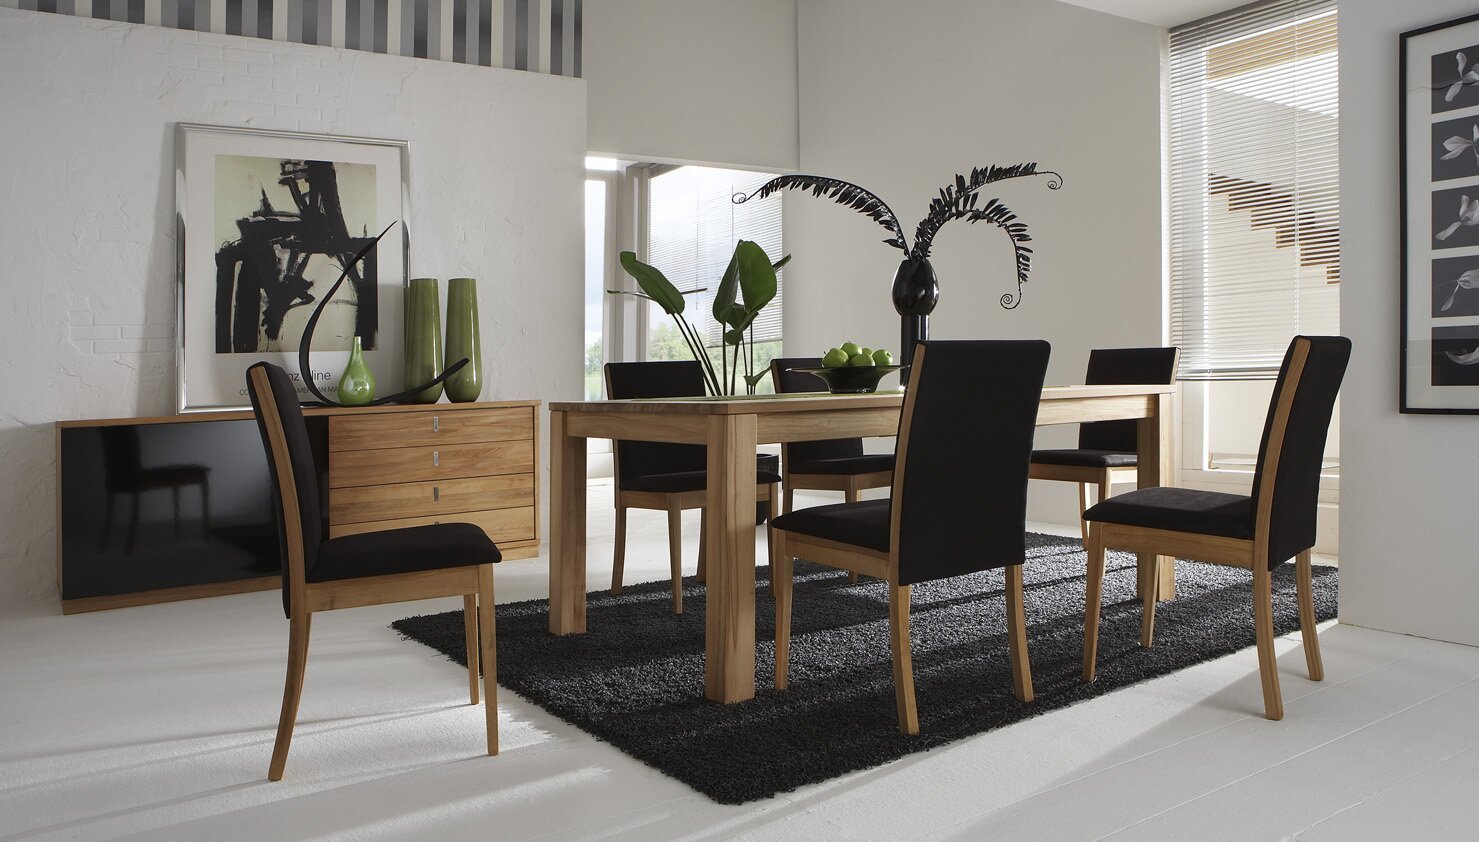 23 modern dining room examples with photos for Contemporary dining room pictures